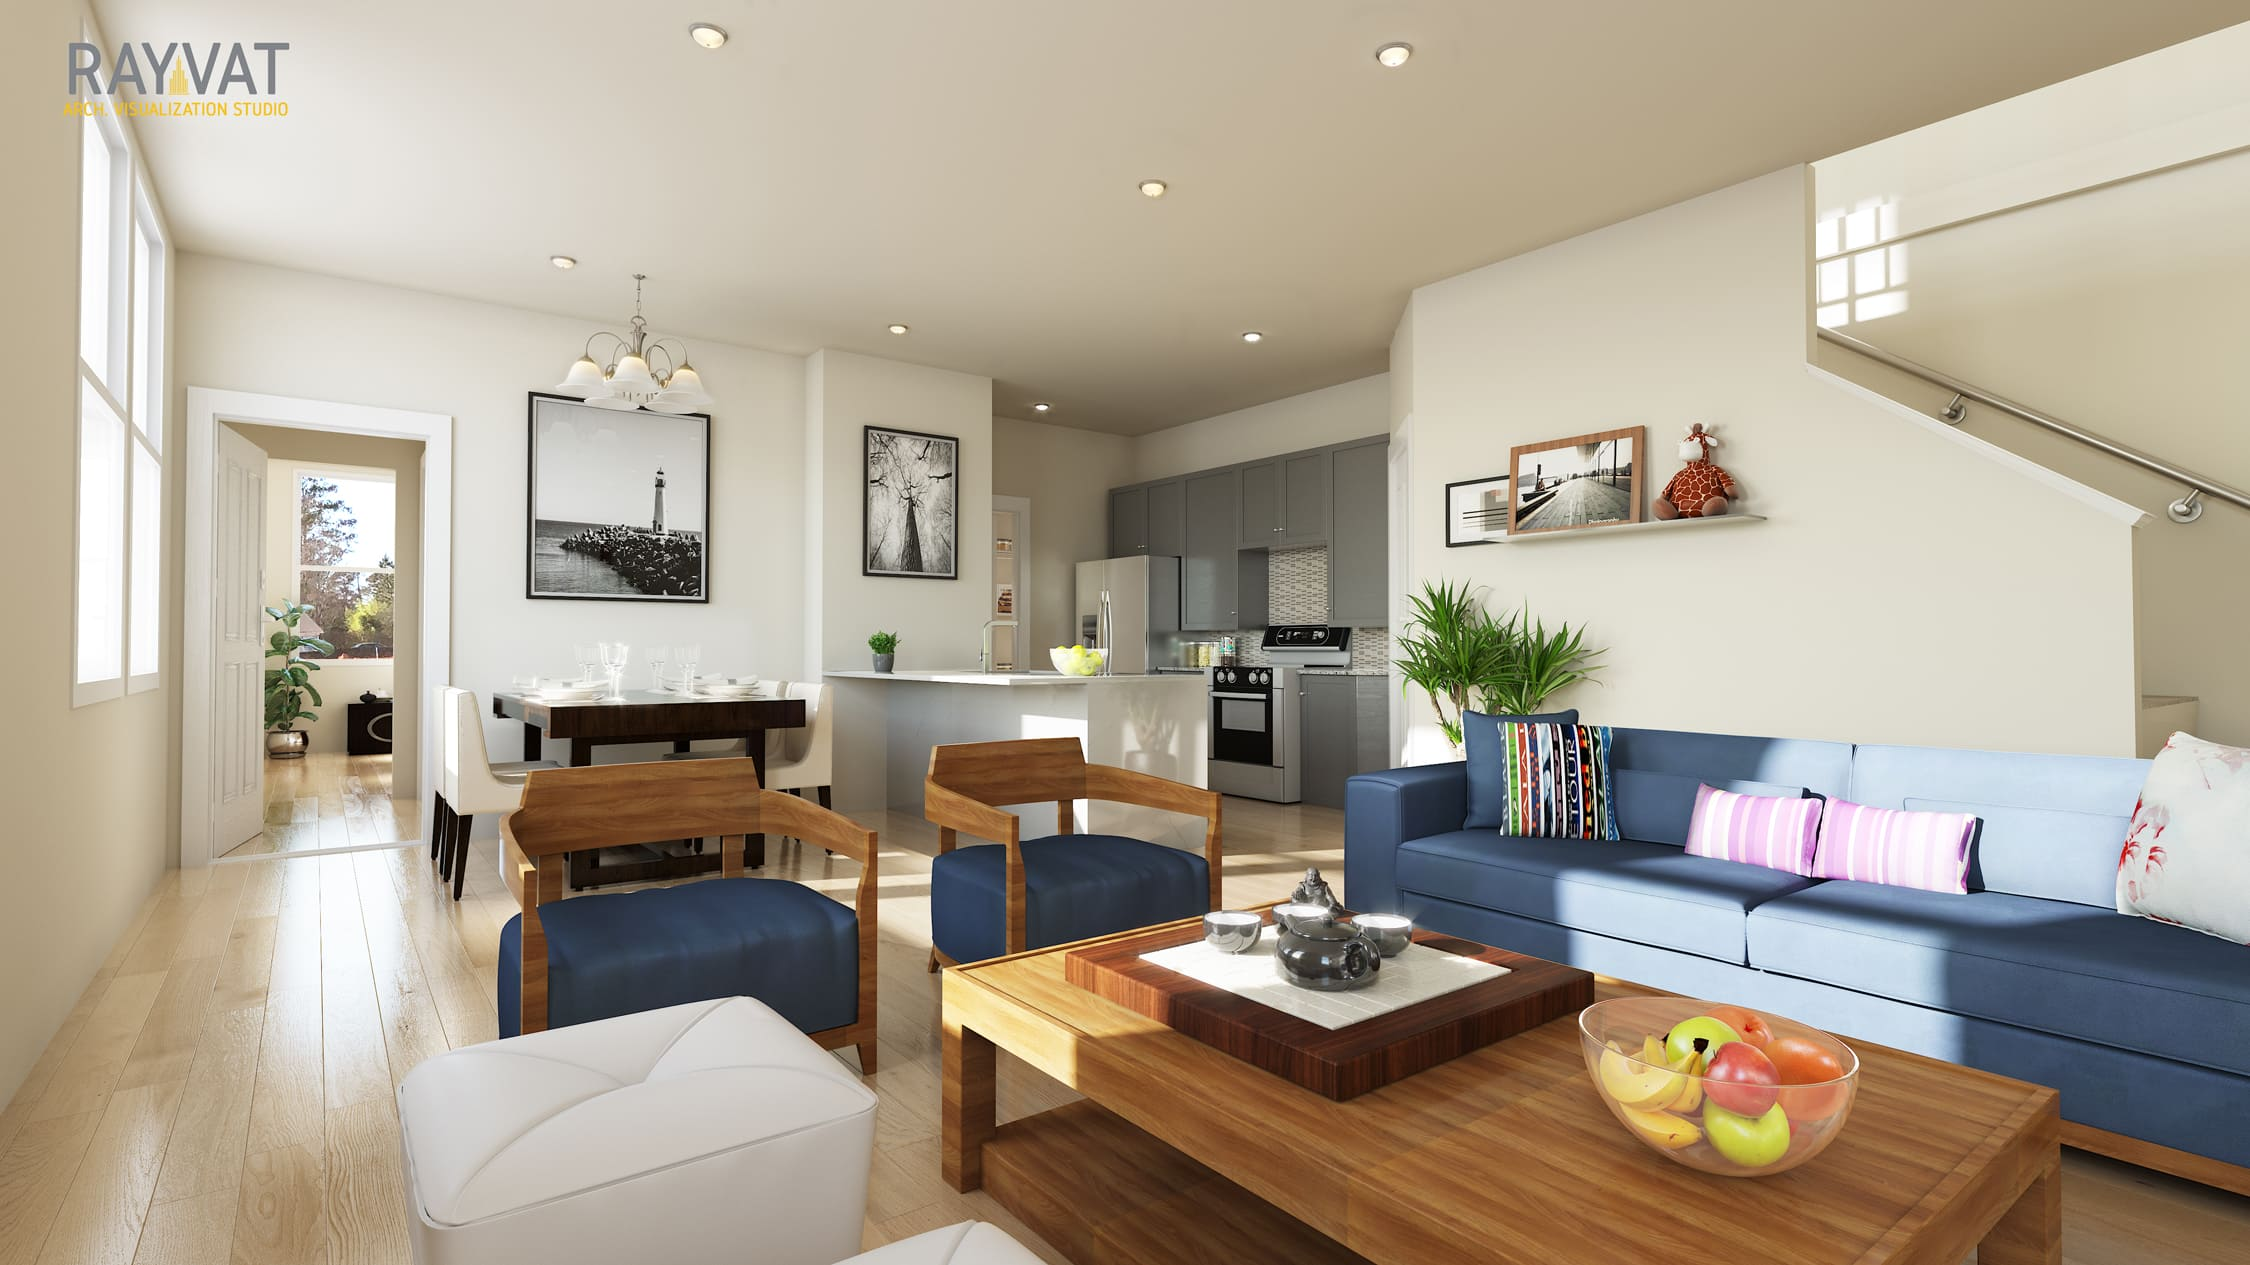 3D Rendering Services Long Beach, California